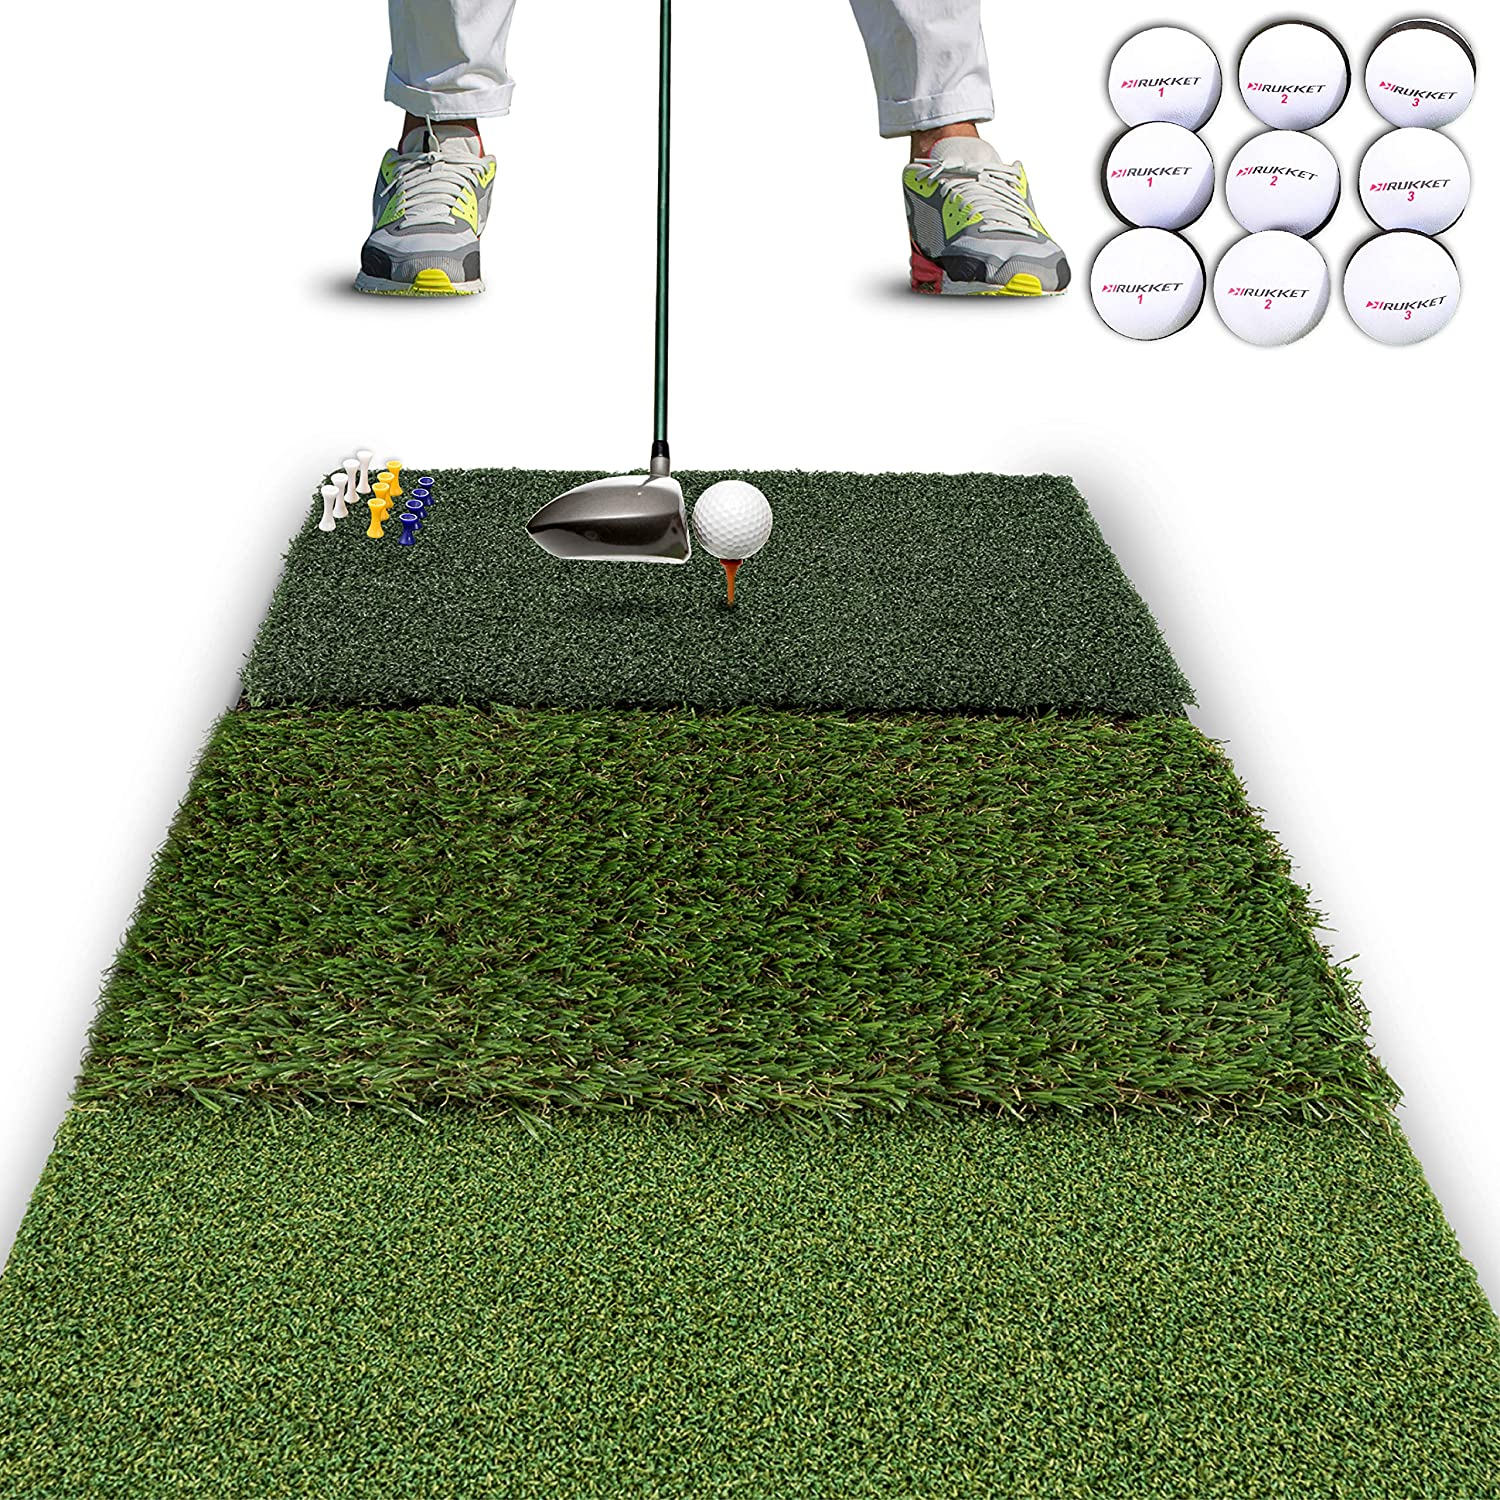 Rukket Tri-Turf Golf Hitting Mat Attack   Portable Driving, Chipping, Training Aids for Backyard with Adjustable Tees and Foam Practice Balls